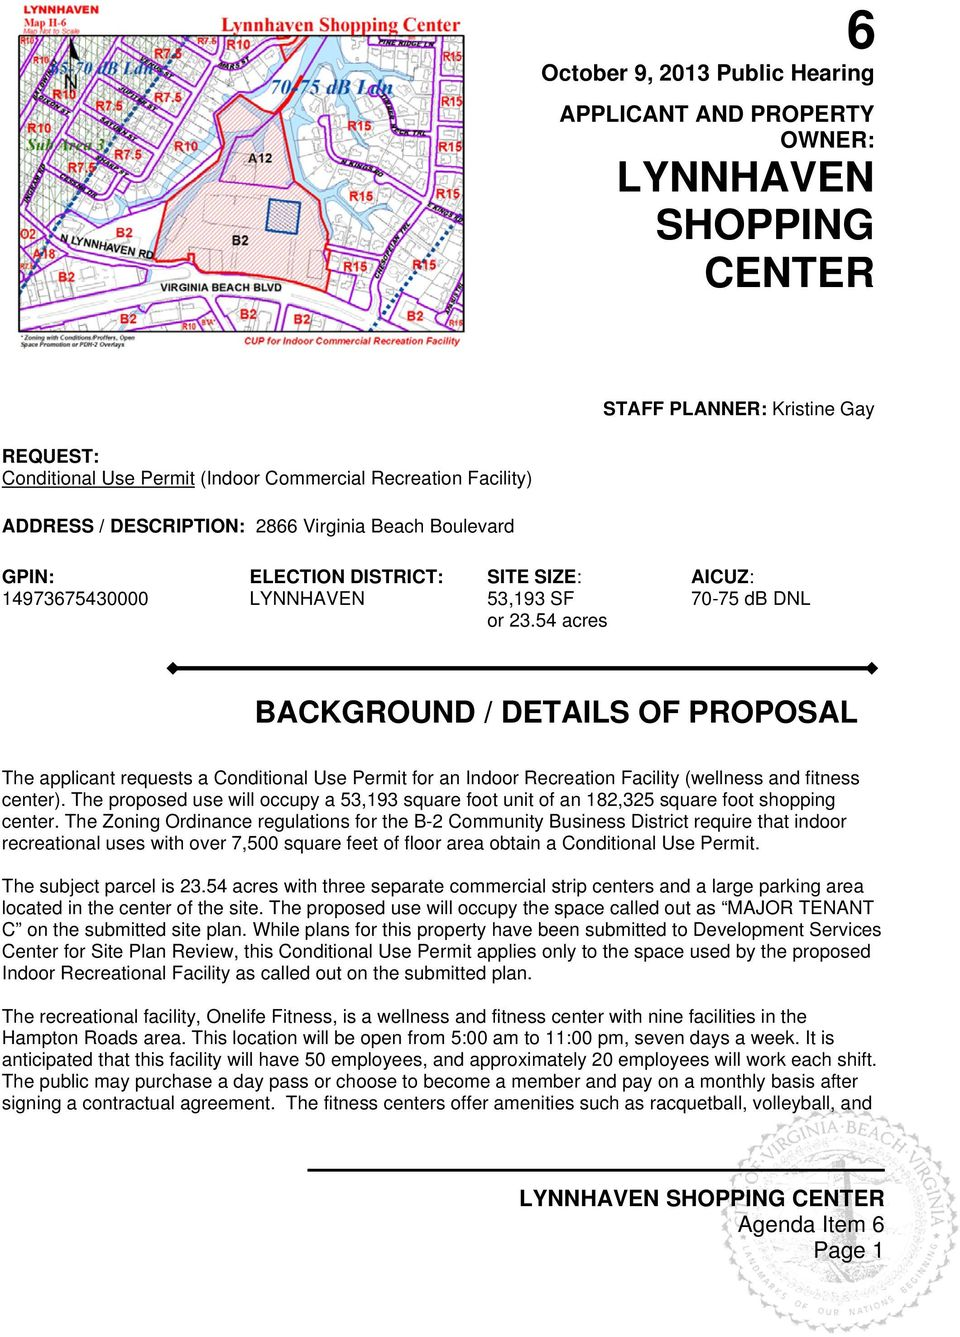 54 acres AICUZ: 70-75 db DNL BACKGROUND / DETAILS OF PROPOSAL The applicant requests a Conditional Use Permit for an Indoor Recreation Facility (wellness and fitness center).